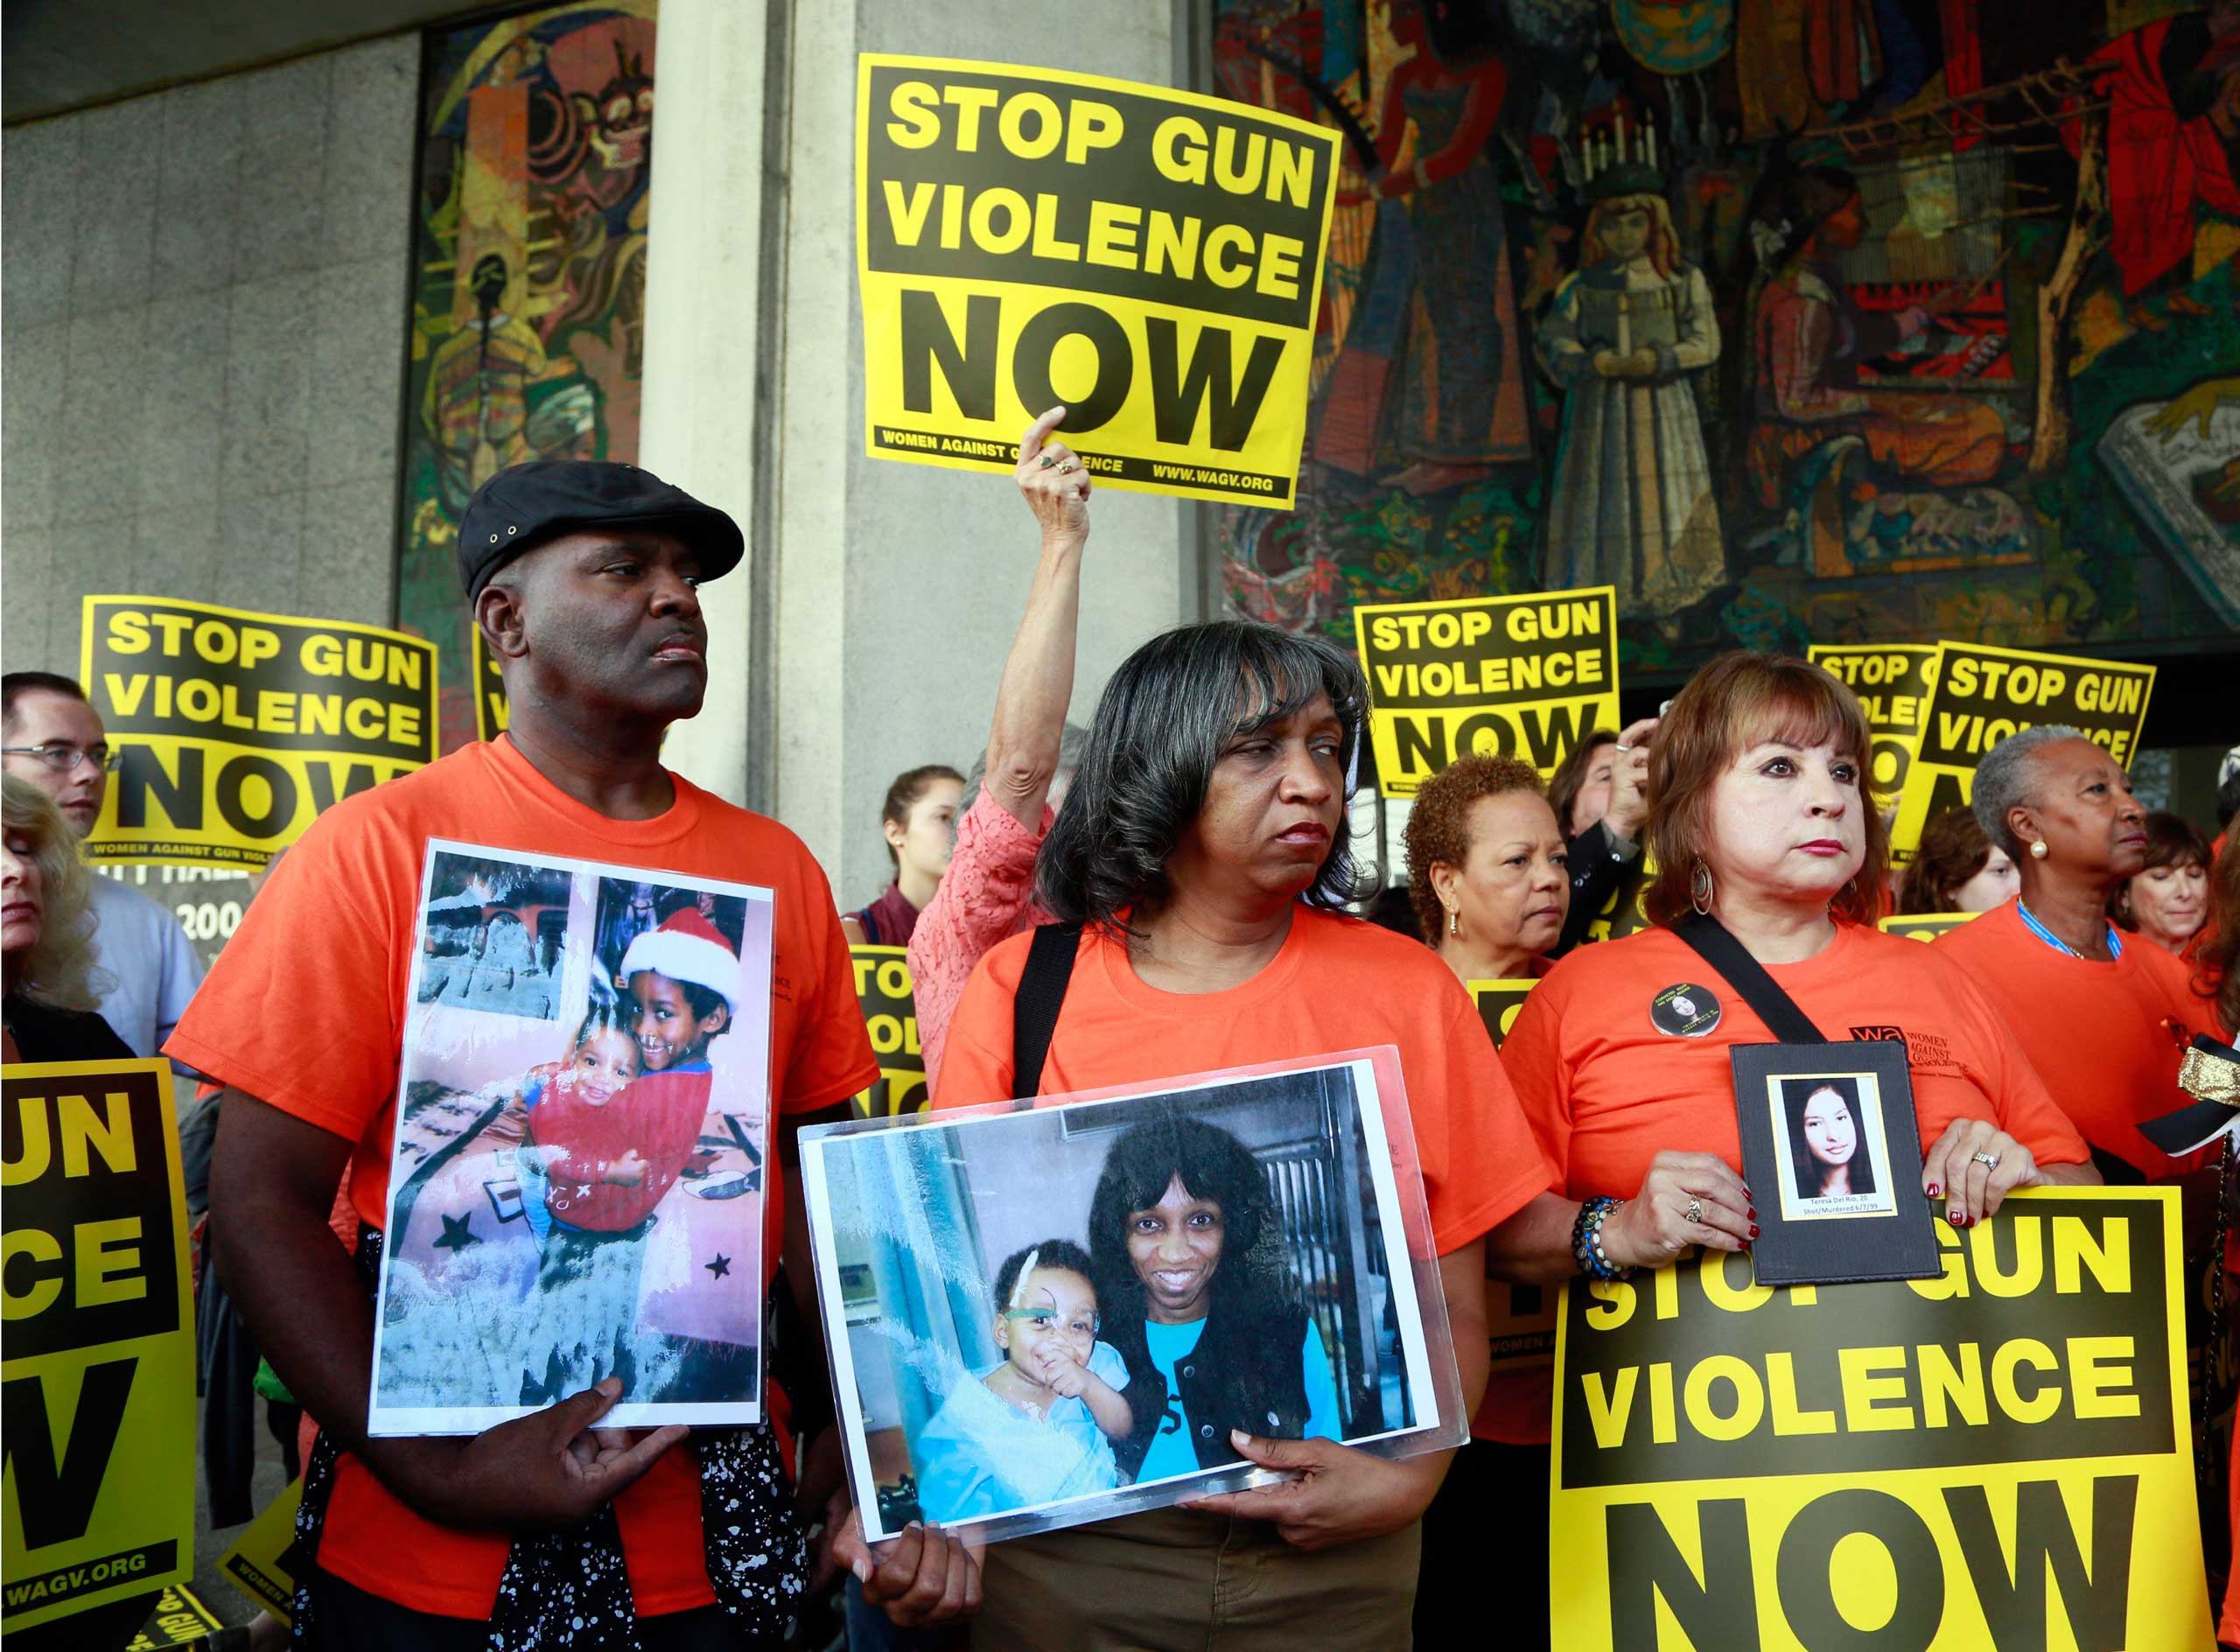 Parents of victims of gun violence, pastor Ruett Foster, from left, his wife Rhonda and Anna Del Rio hold pictures of their late children, during a rally supporting a city ordinance to ban the possession of high-capacity gun magazines outside Los Angeles City Hall, on July 28, 2015.